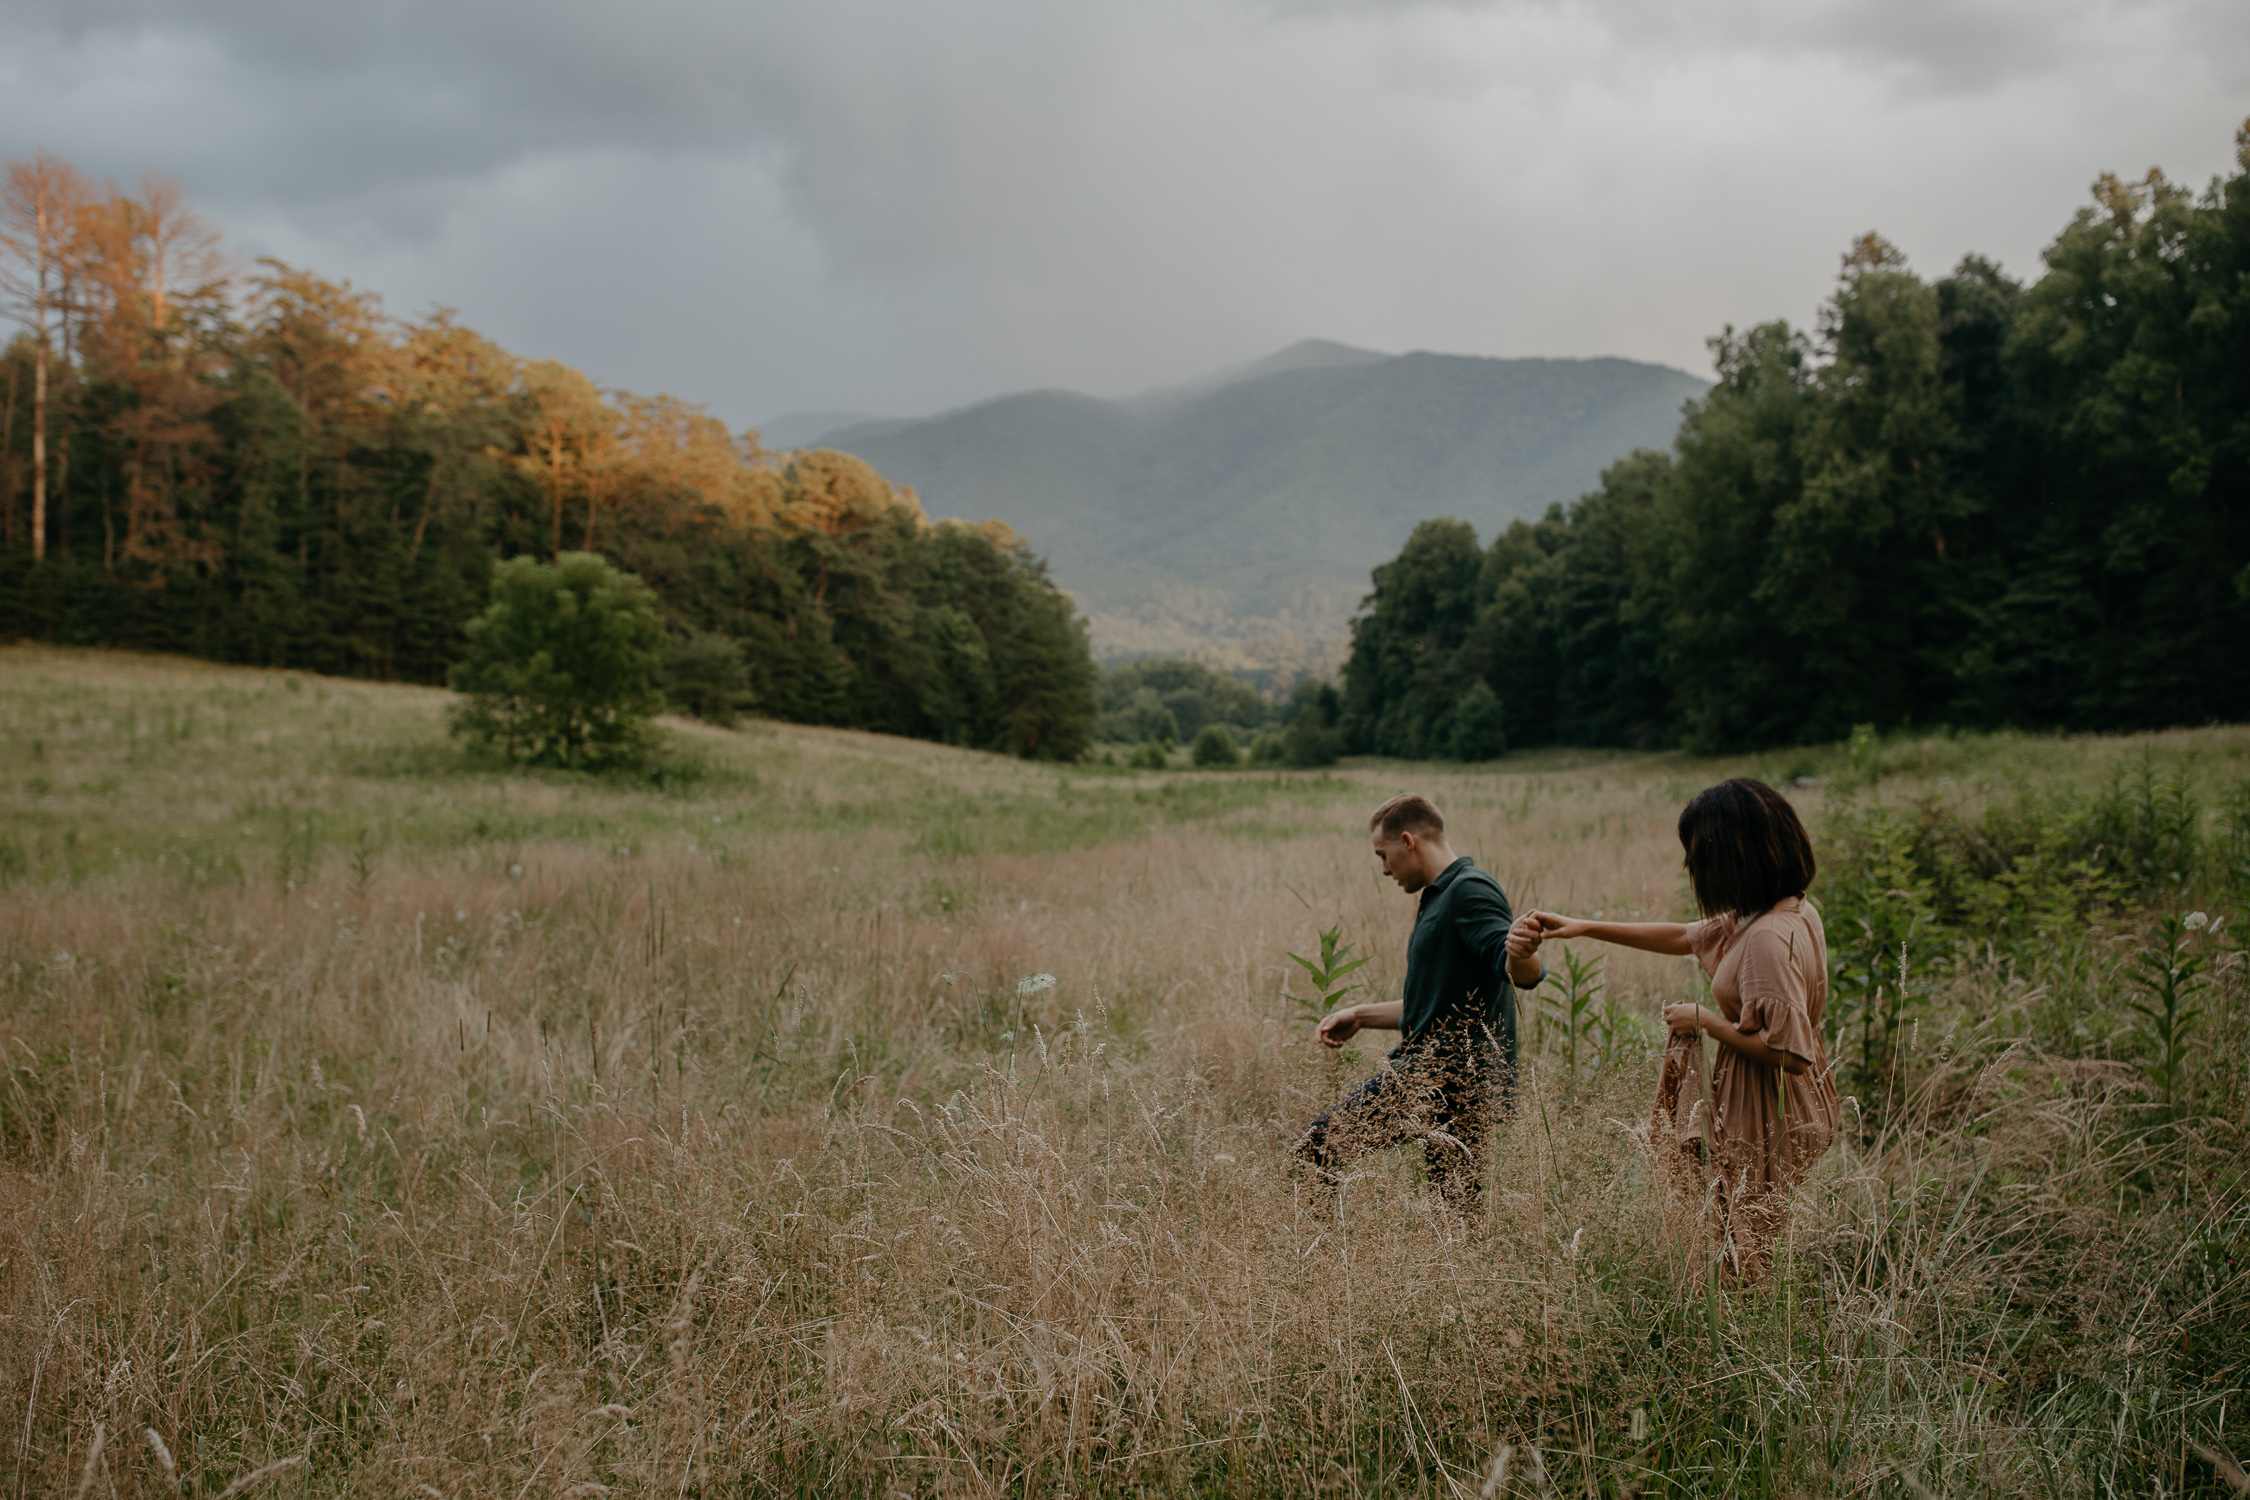 ariannamtorres and isaac engagement session at cades cove smoky mountains elopement-91.jpg